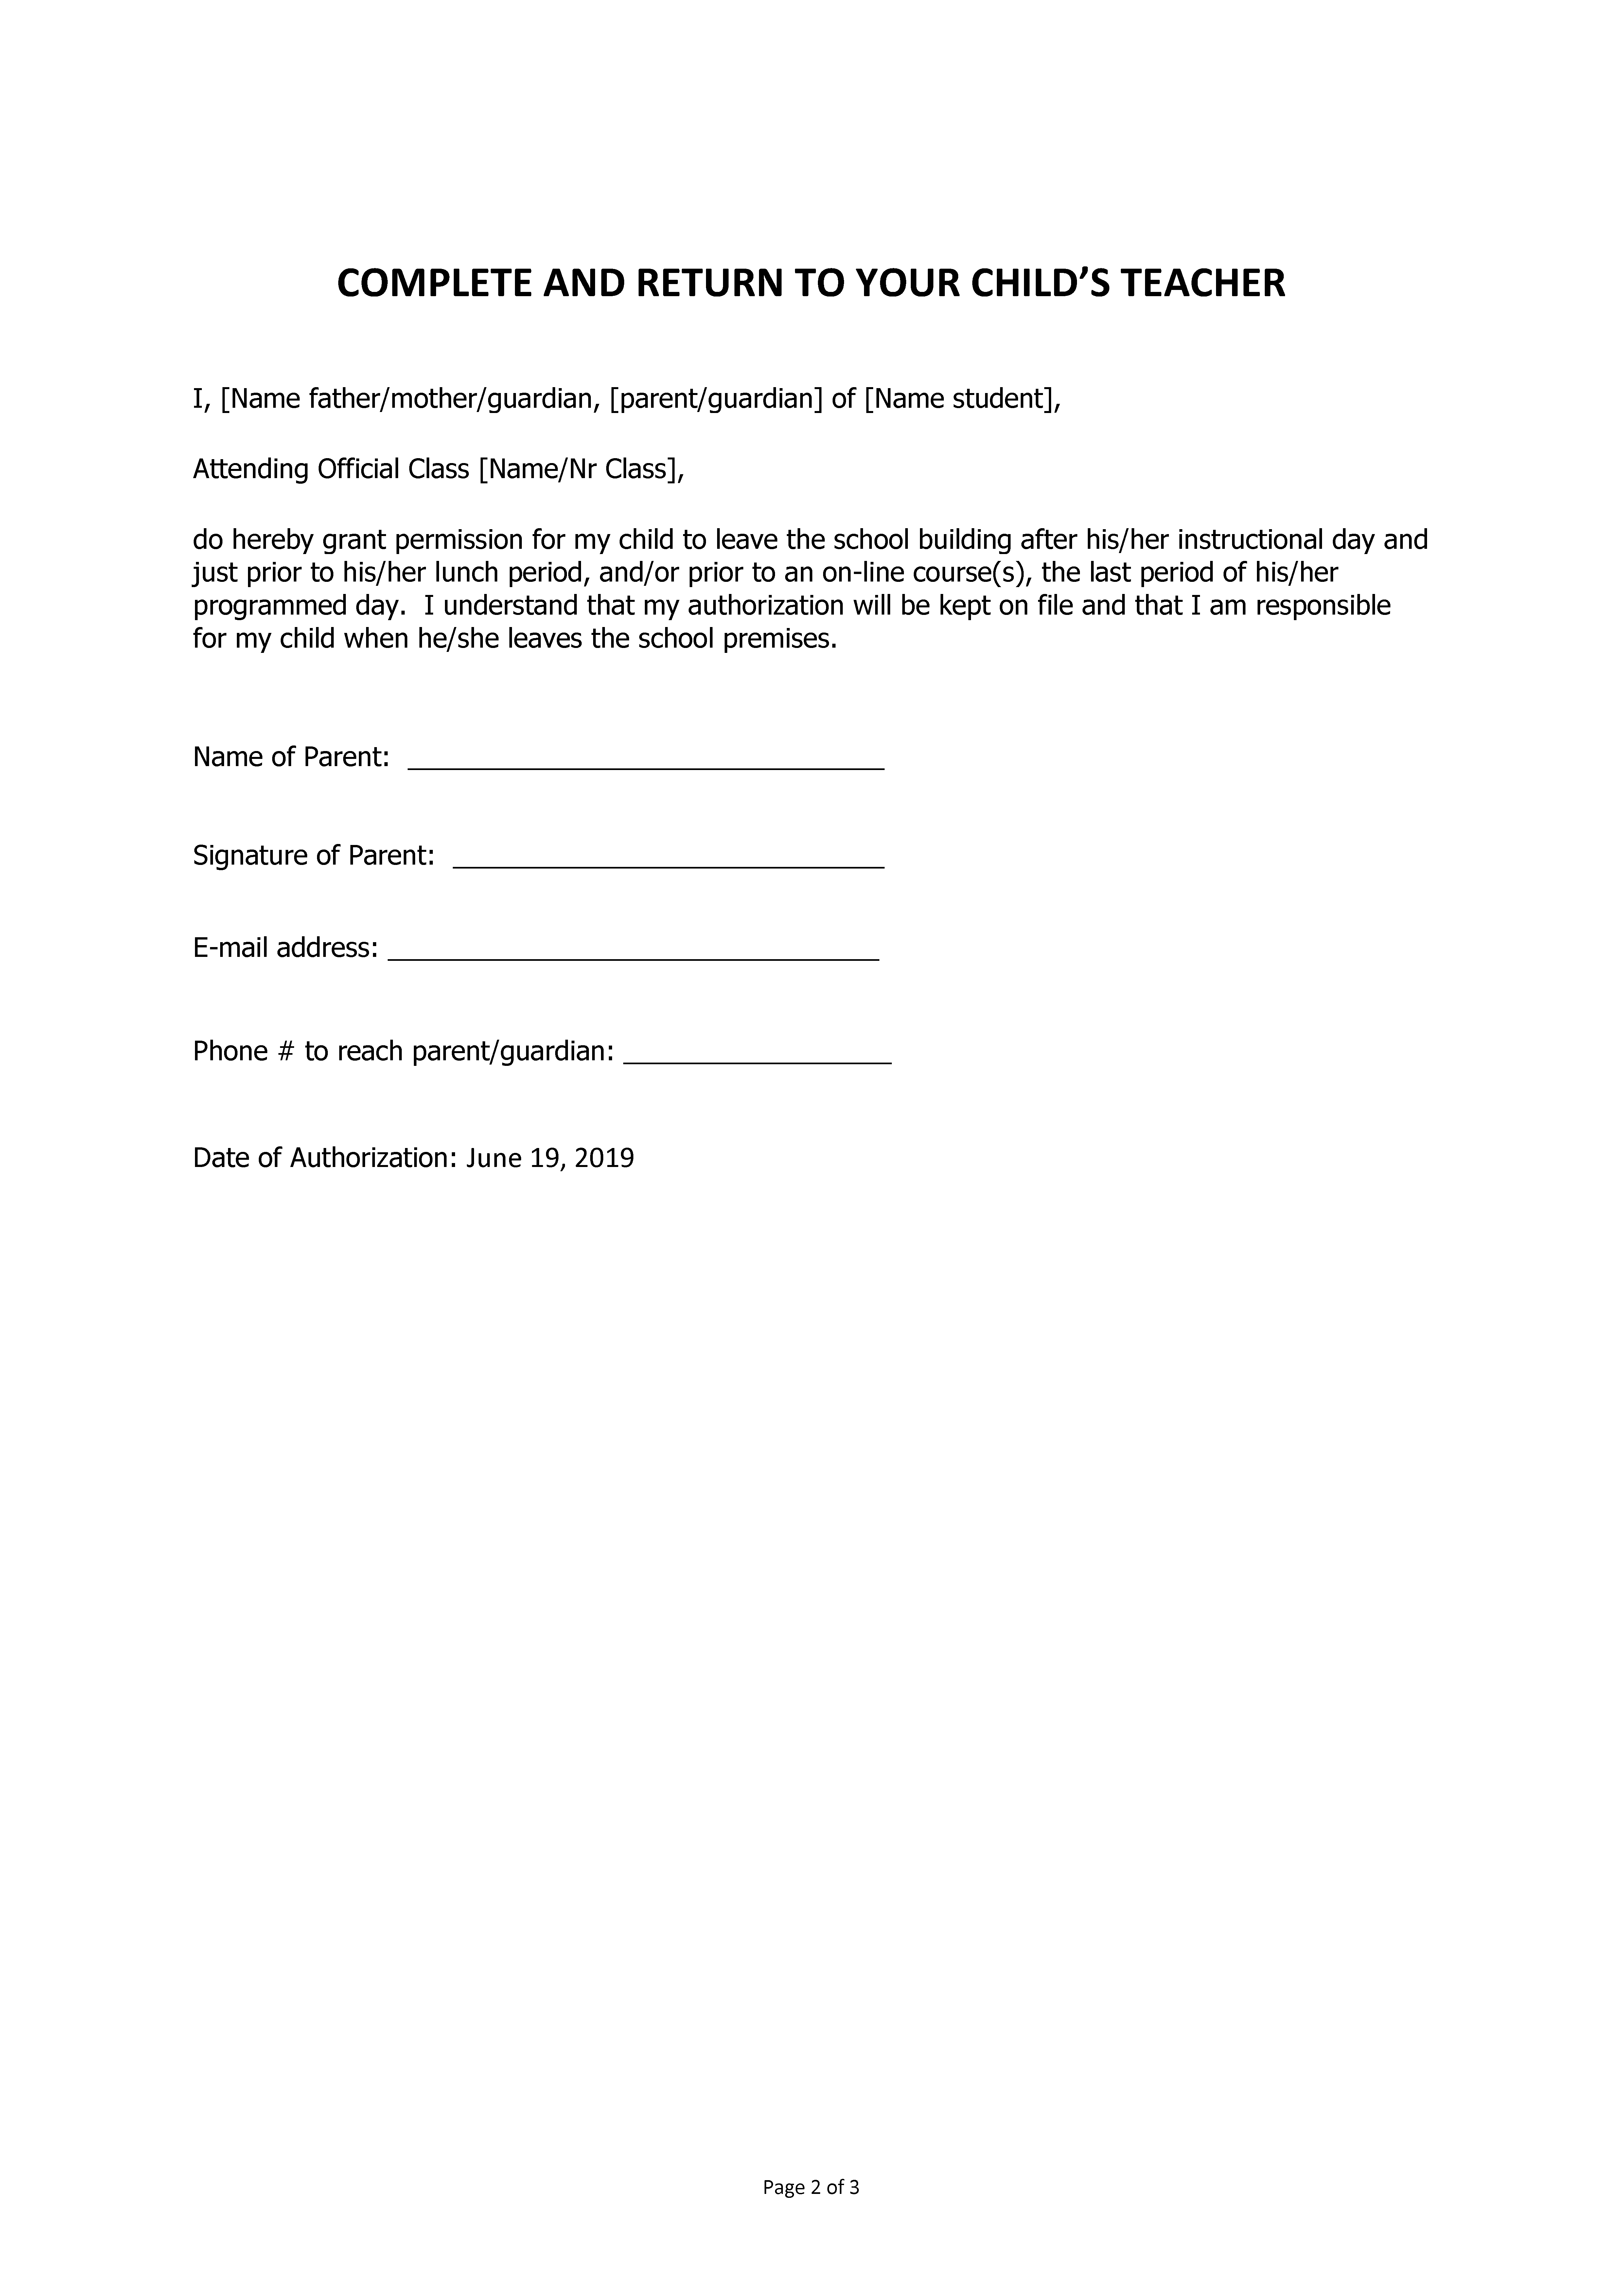 Early leave permission letter by parents to school main image